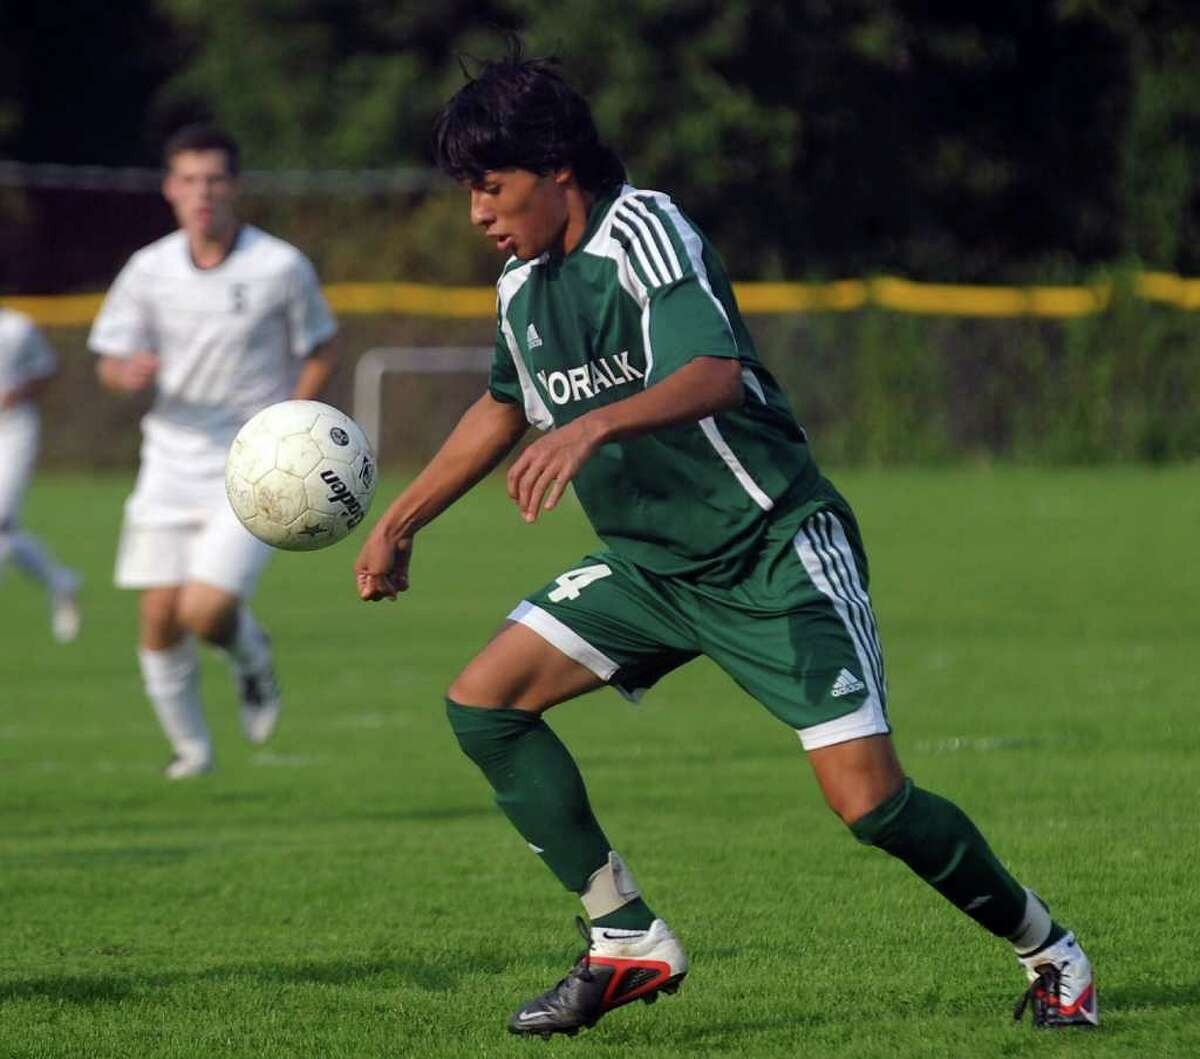 Highlights from boys soccer action between Staples and Norwalk in Westport, Conn. on Friday September 30, 2011.